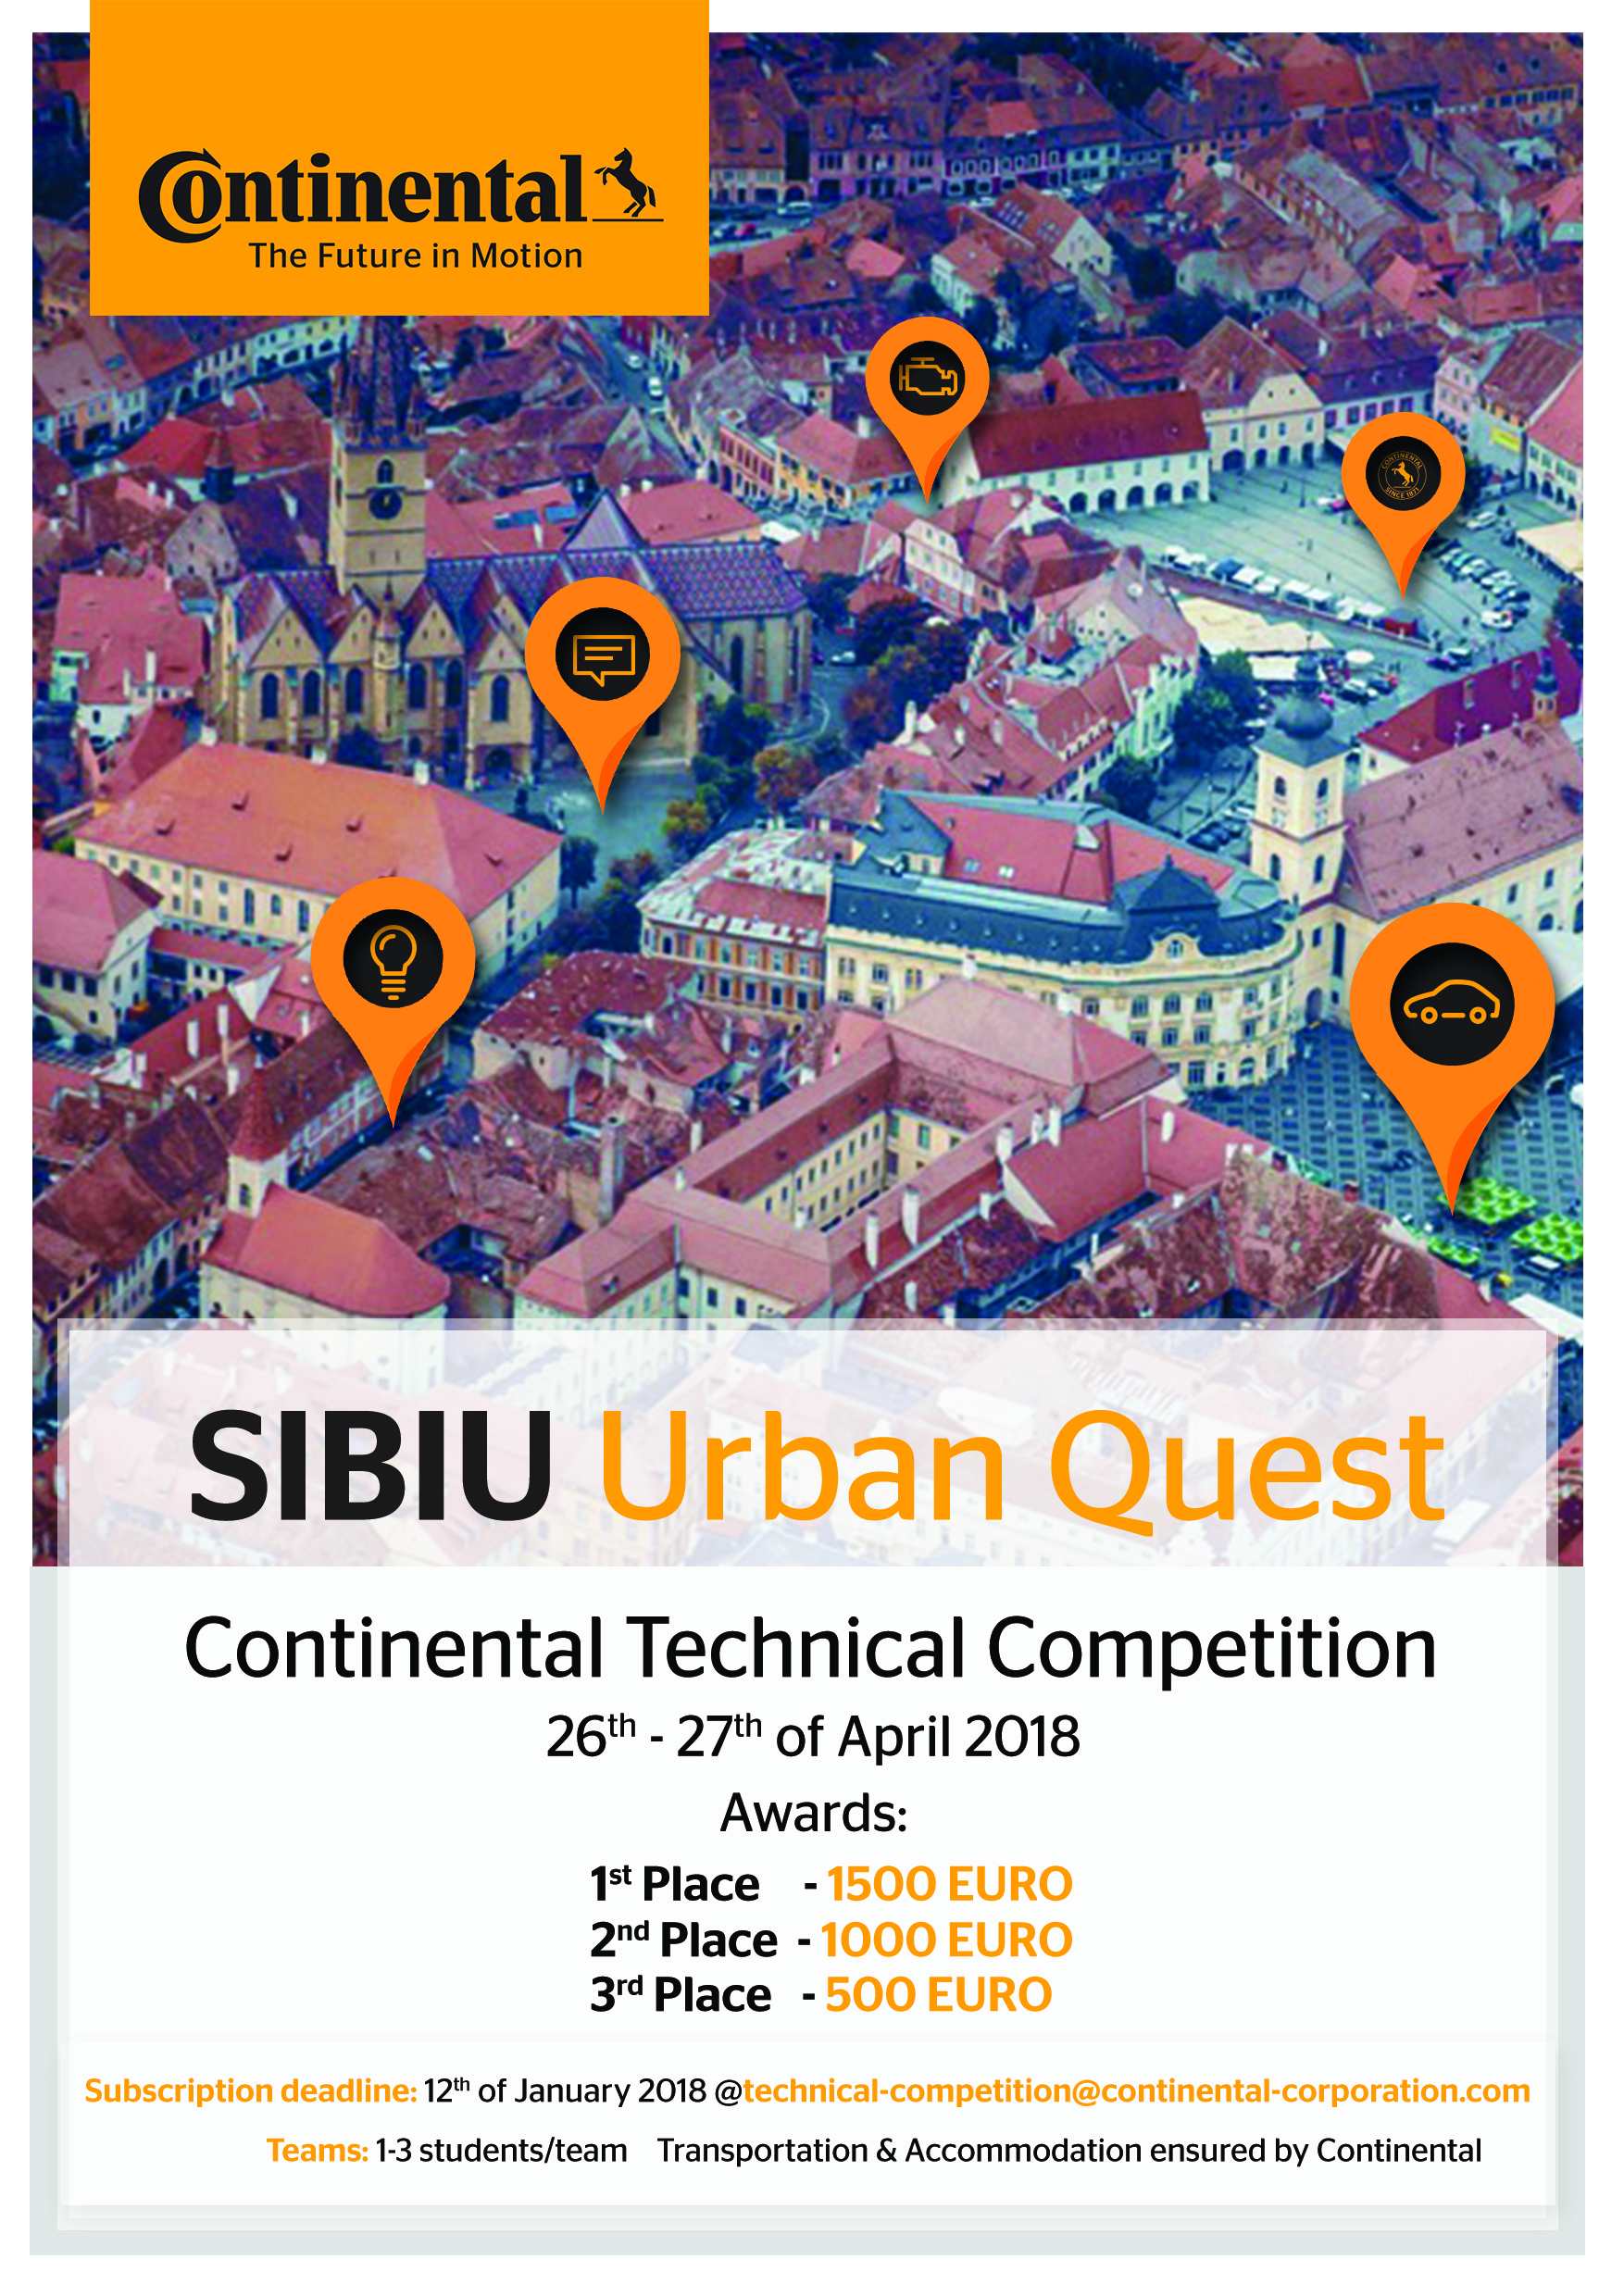 Continental Technical Competition – Sibiu Urban Quest 2018